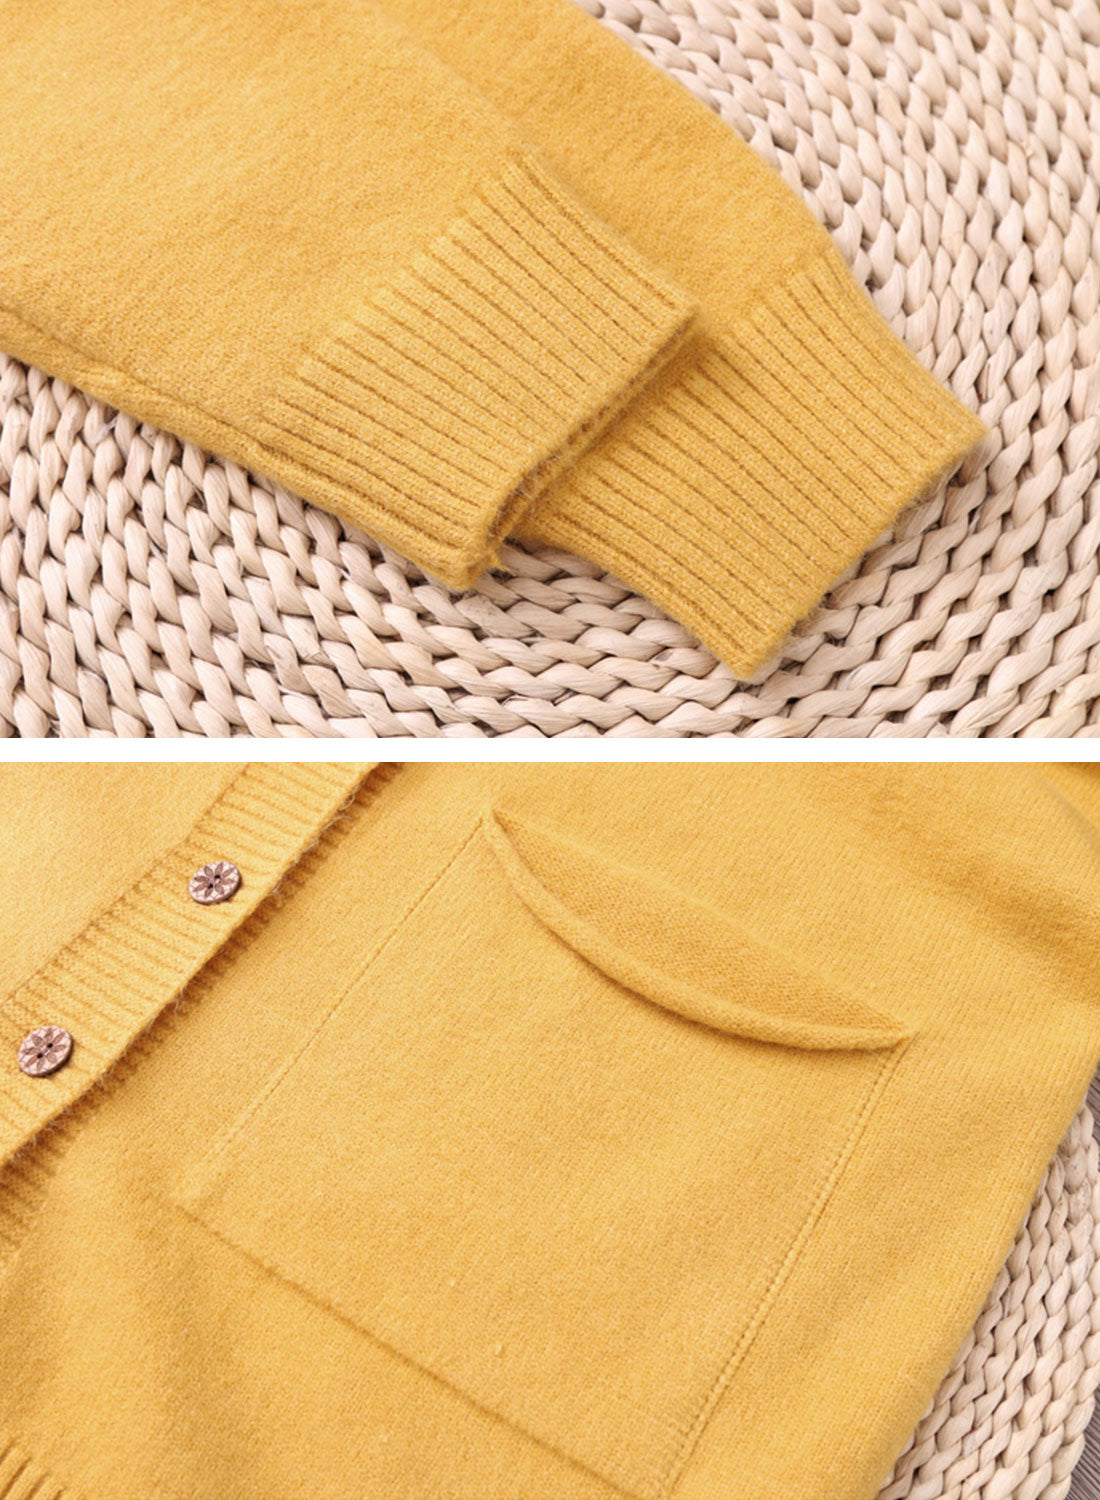 Fozy Little Thing Cardigan Sweater Details 2